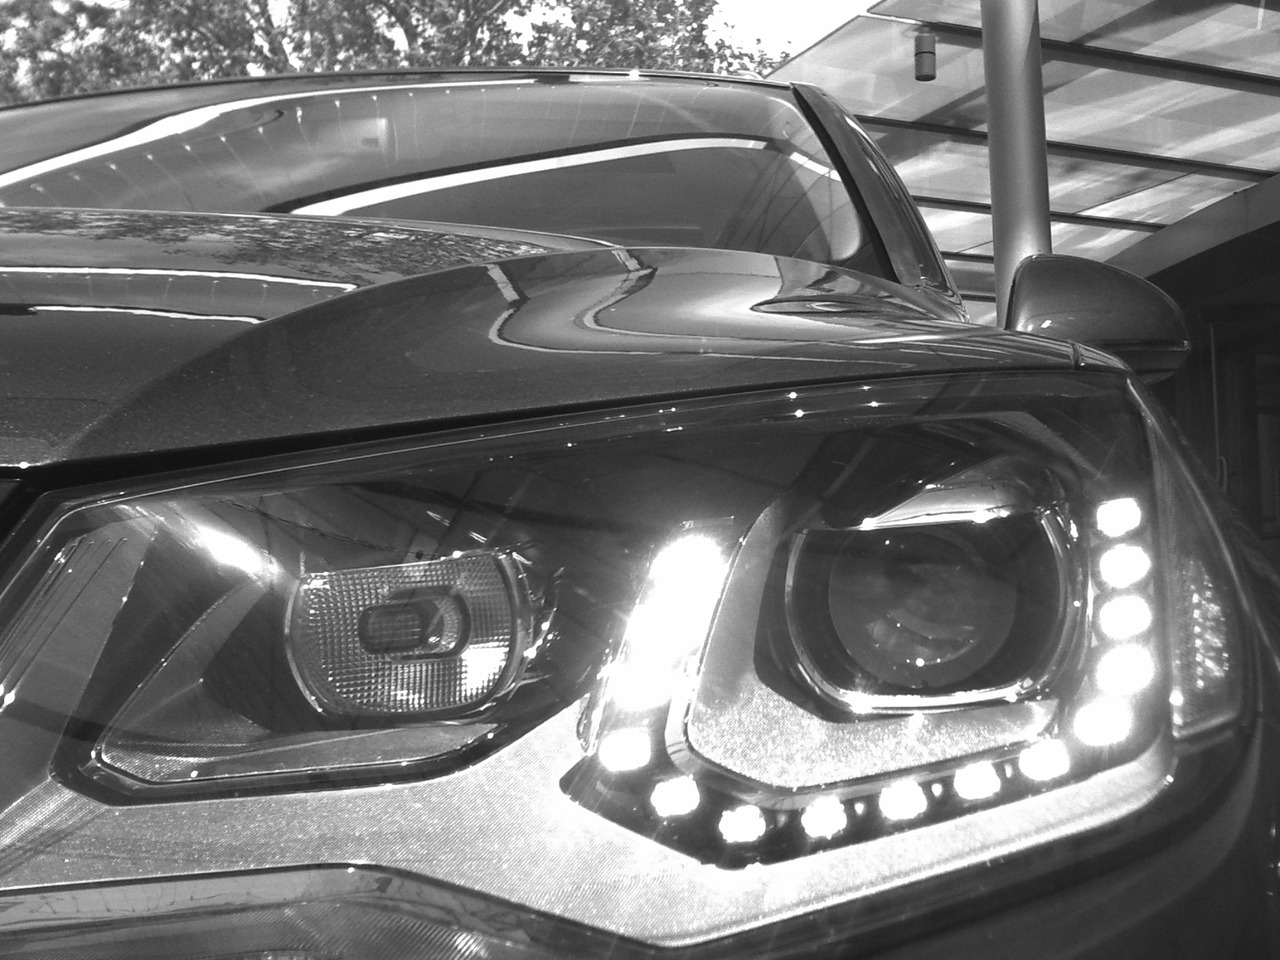 Headlight of the all-new 2011 Volkswagen Touareg2.